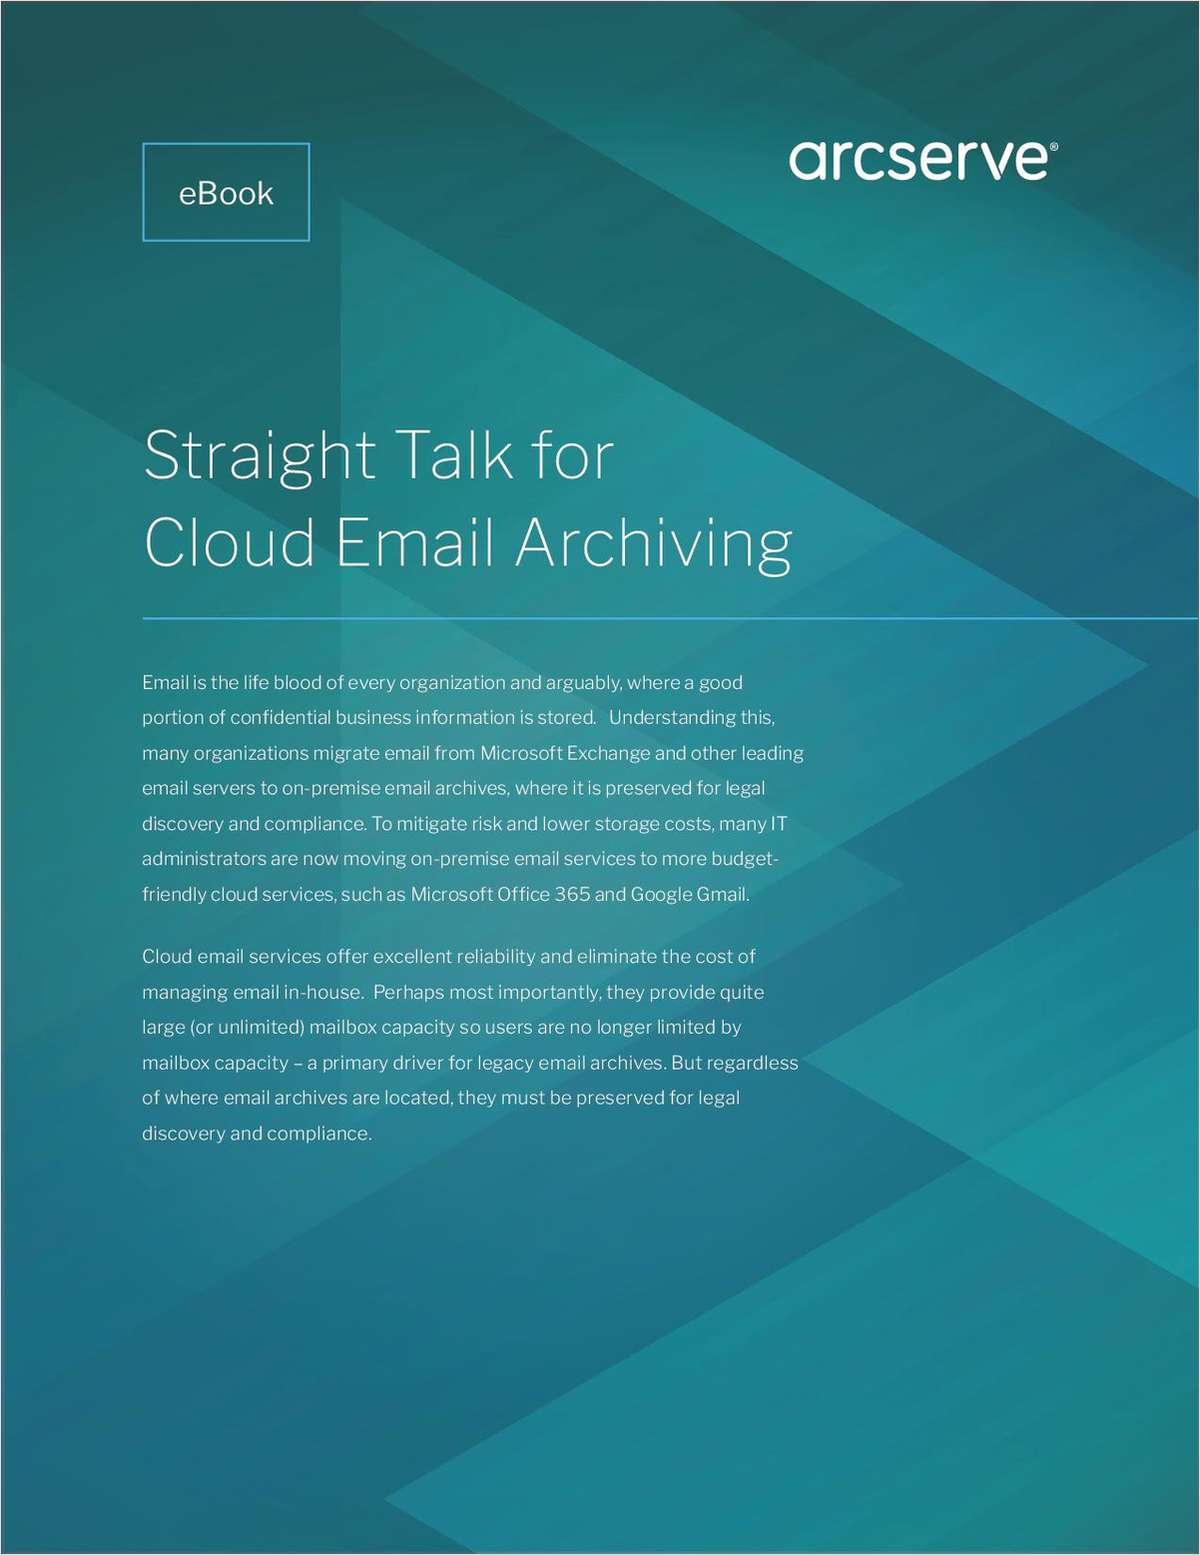 Straight Talk for Cloud Email Archiving